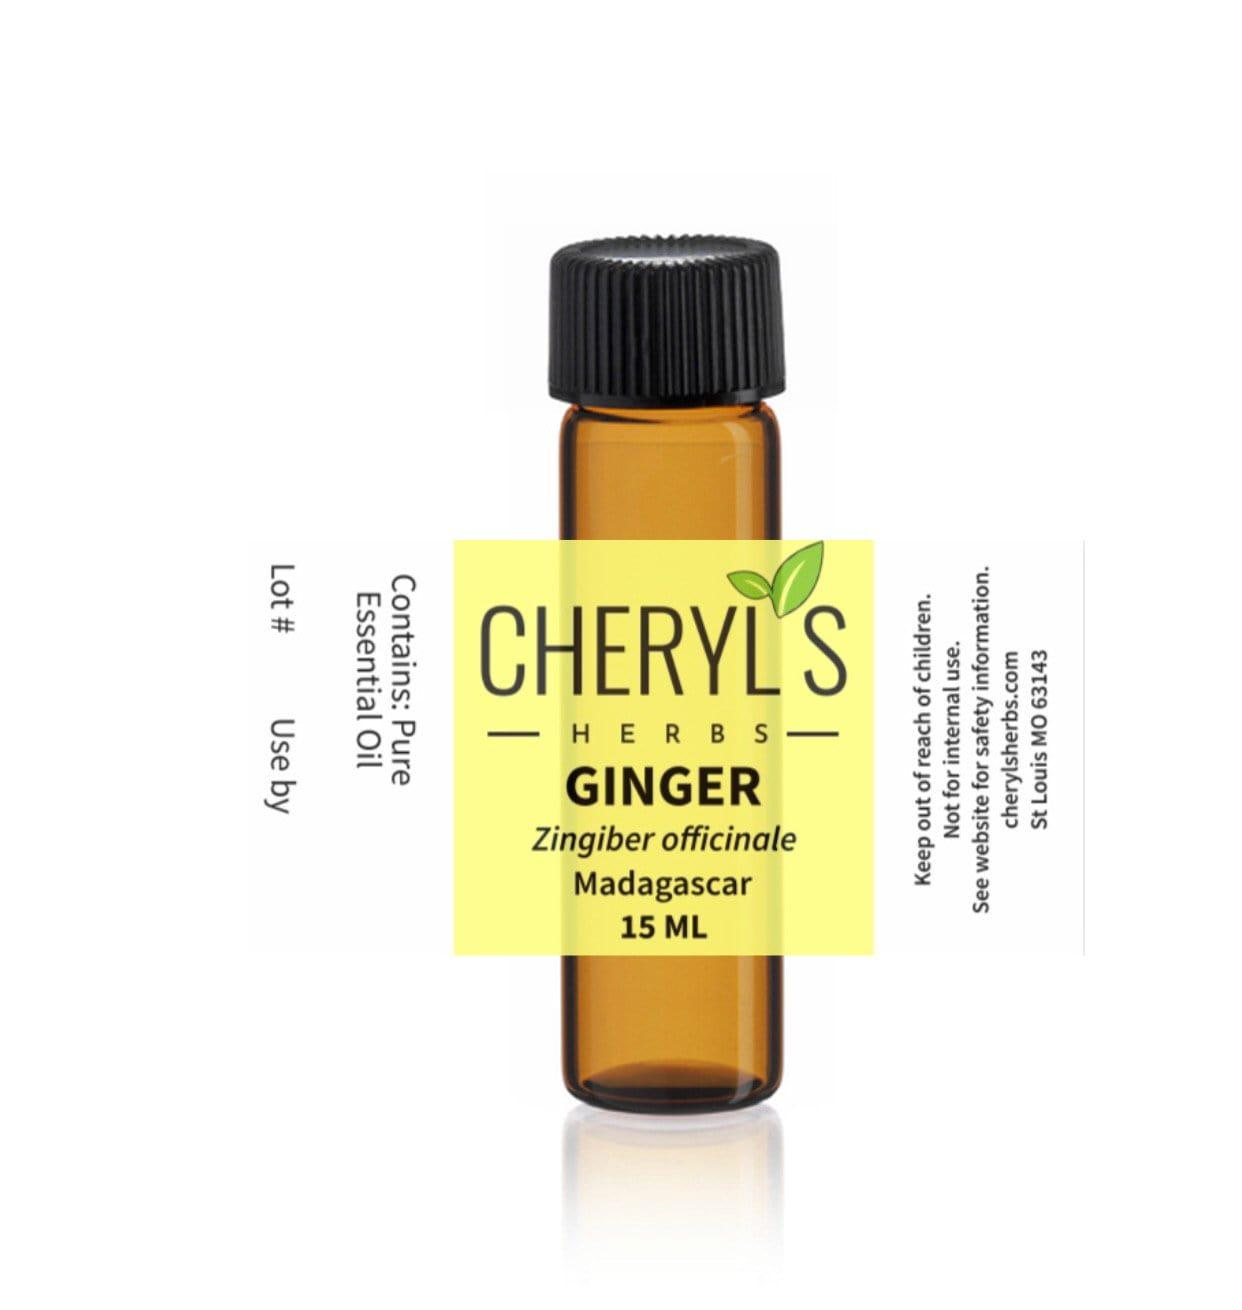 GINGER ESSENTIAL OIL - Cheryls Herbs